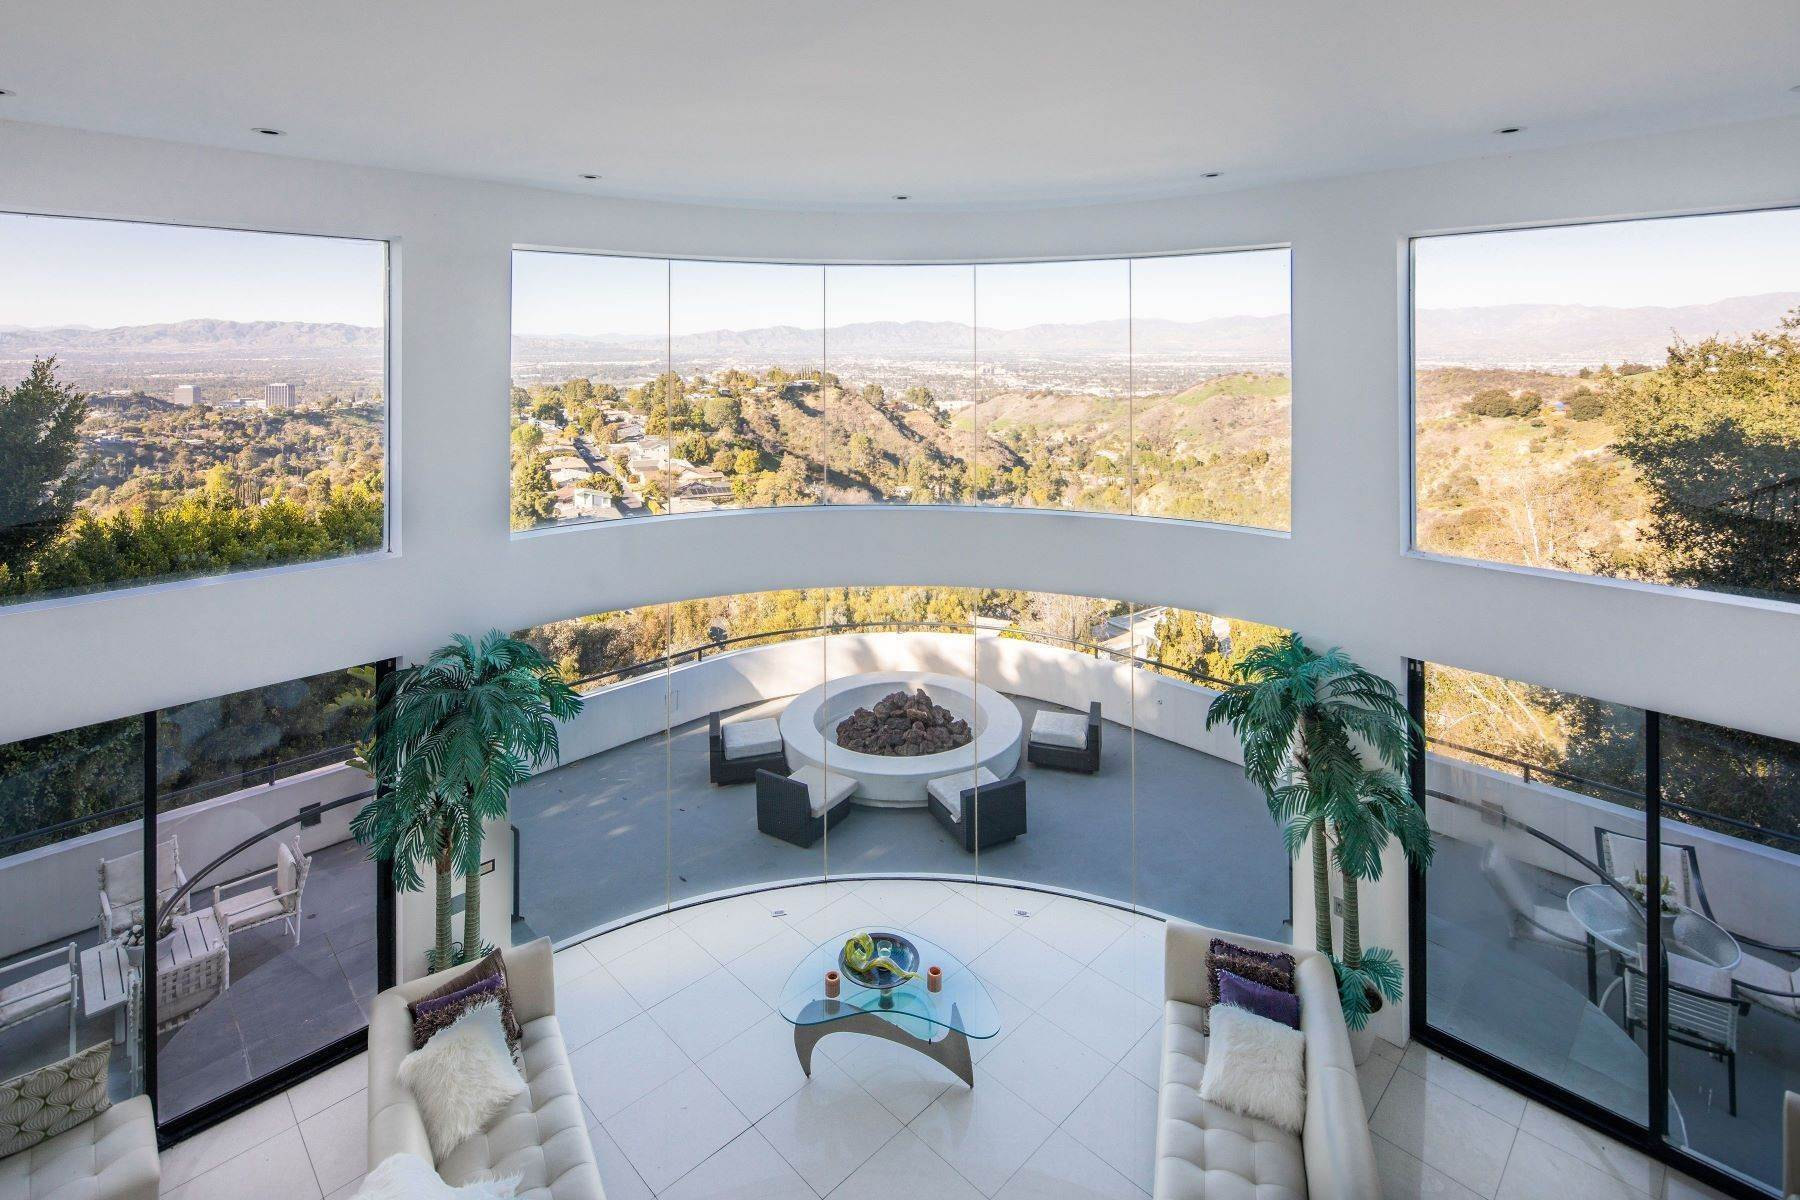 Single Family Homes for Sale at 15105 Mulholland Drive, Los Angeles, CA 90077 15105 Mulholland Drive Los Angeles, California 90077 United States